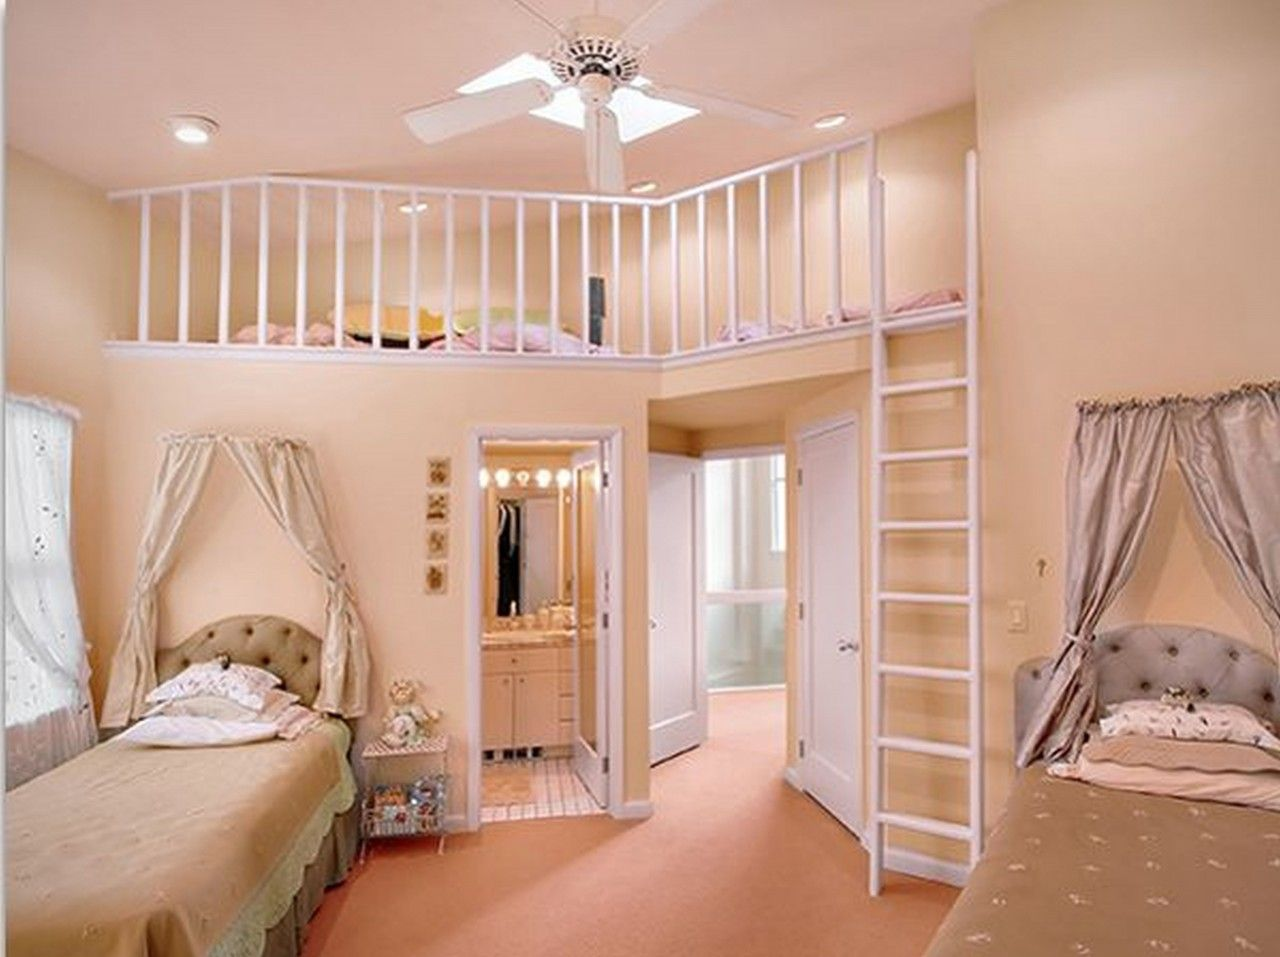 amusing cute bedroom ideas inspiration exquisite luxury bedrooms outstanding hardware ornamentation beautiful peach color teen